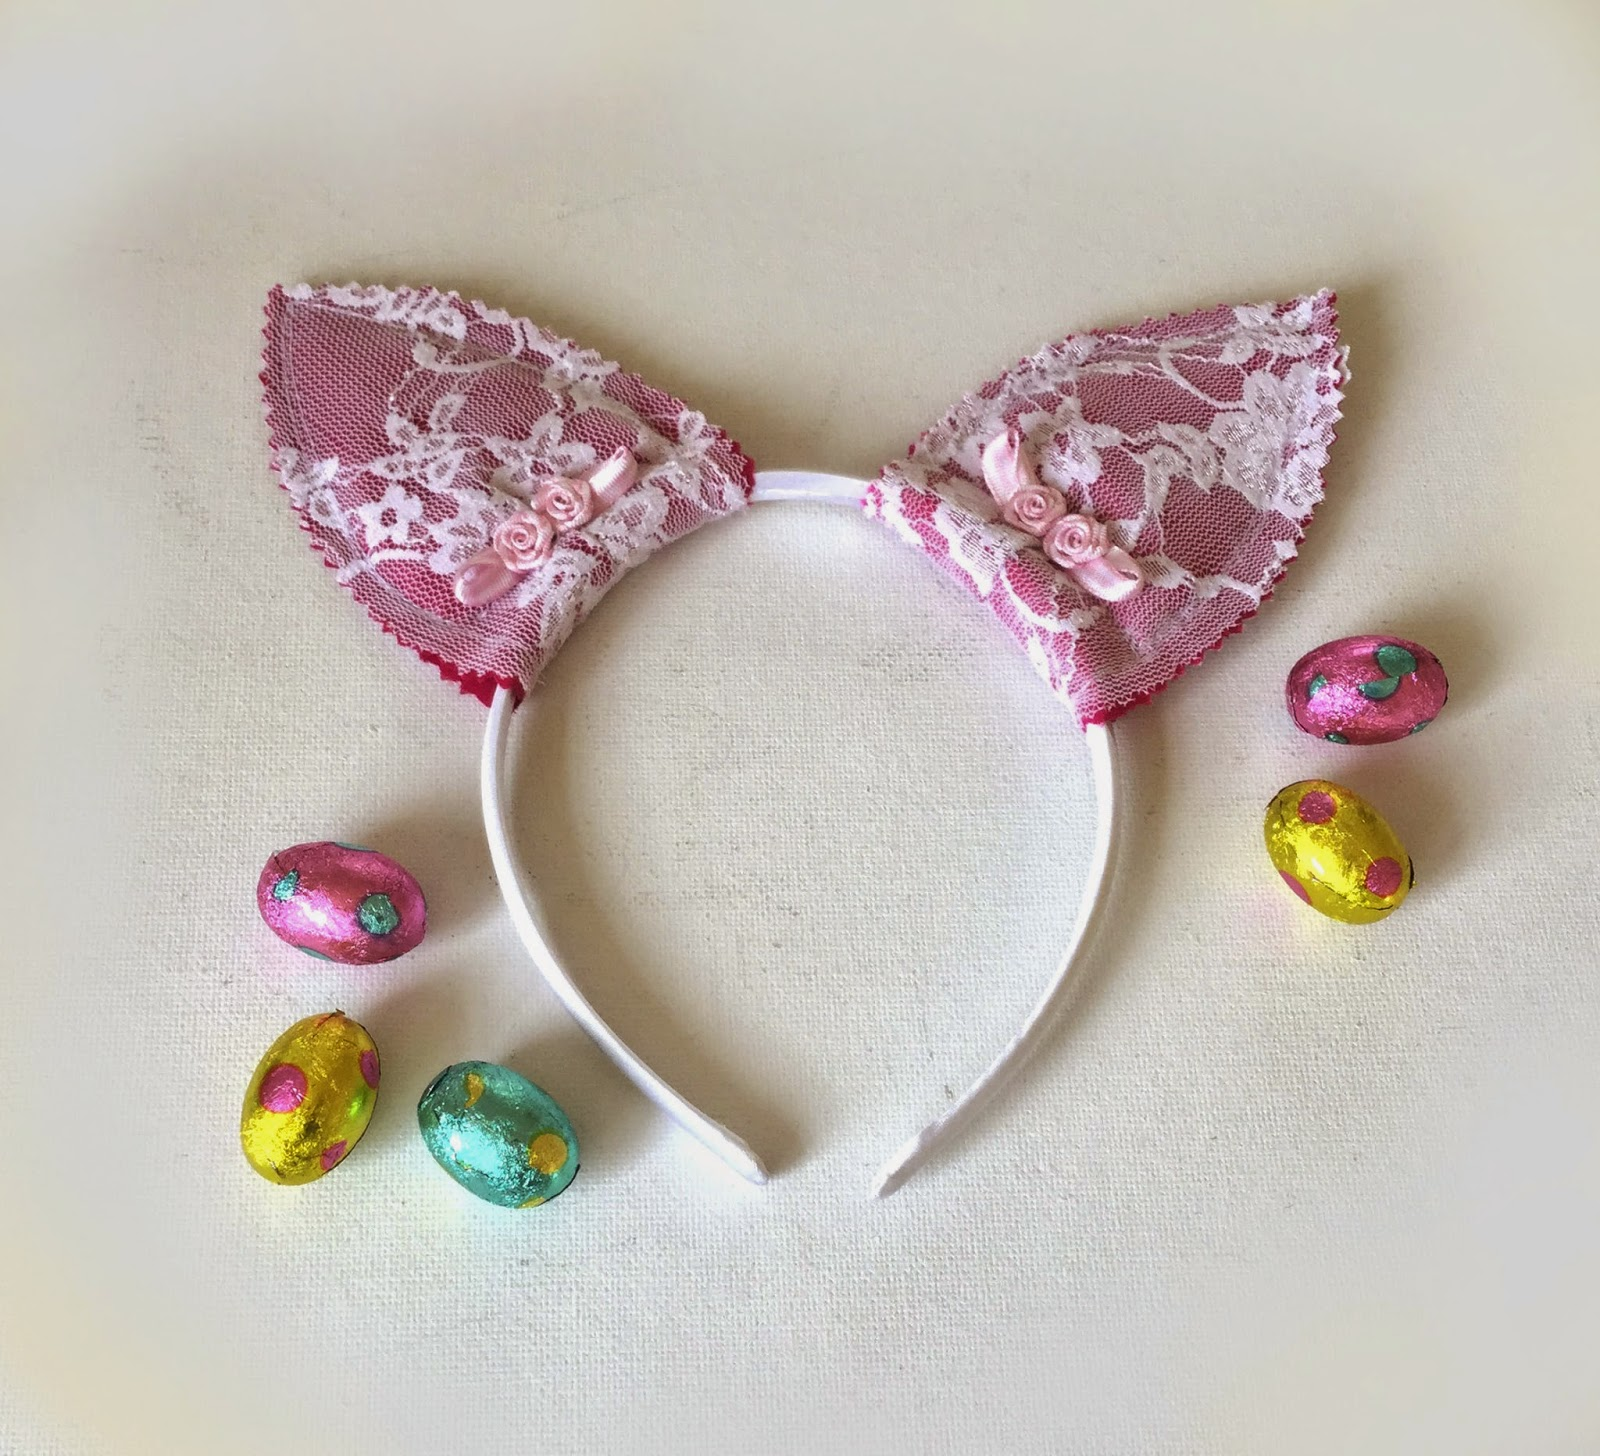 https://www.etsy.com/uk/listing/223111451/easter-bunny-rabbit-ears-headband-for?ref=shop_home_active_10